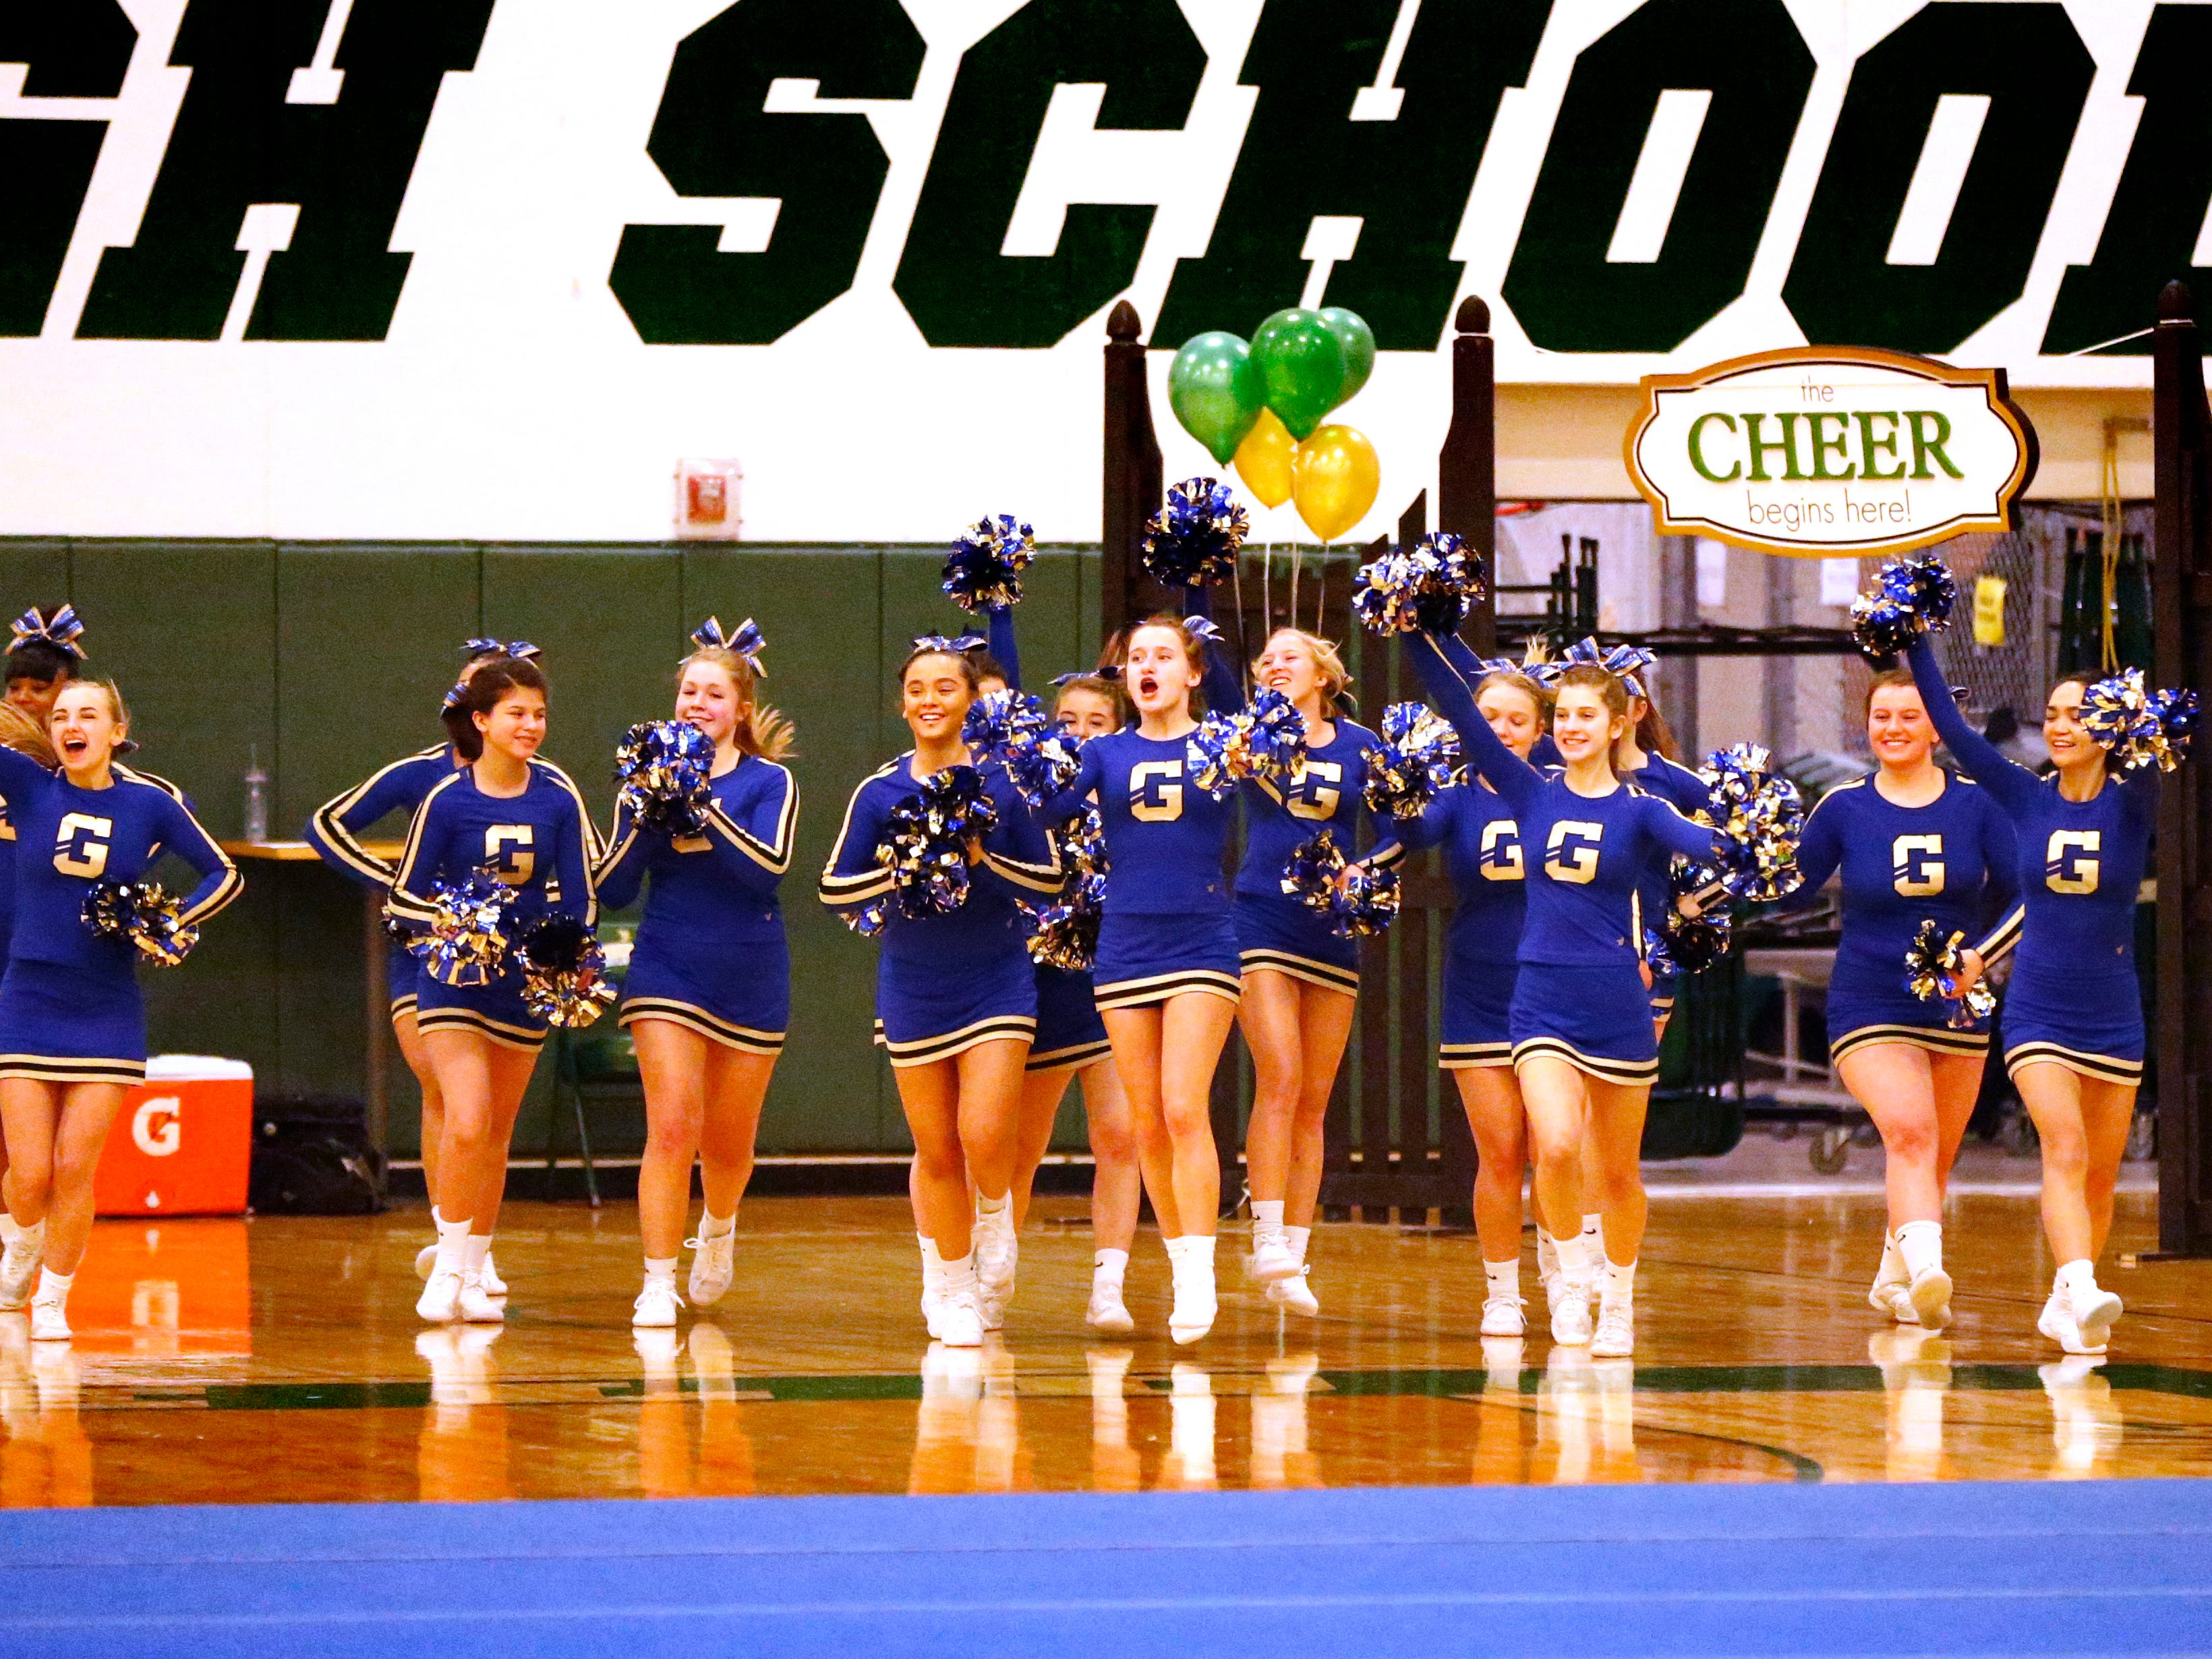 The Germantown High School team takes the floor to compete in the cheer dance division during the Greenfield Xtreme Cheer competition at Greenfield High School on Jan. 12 that drew 56 teams competing in 13 divisions.